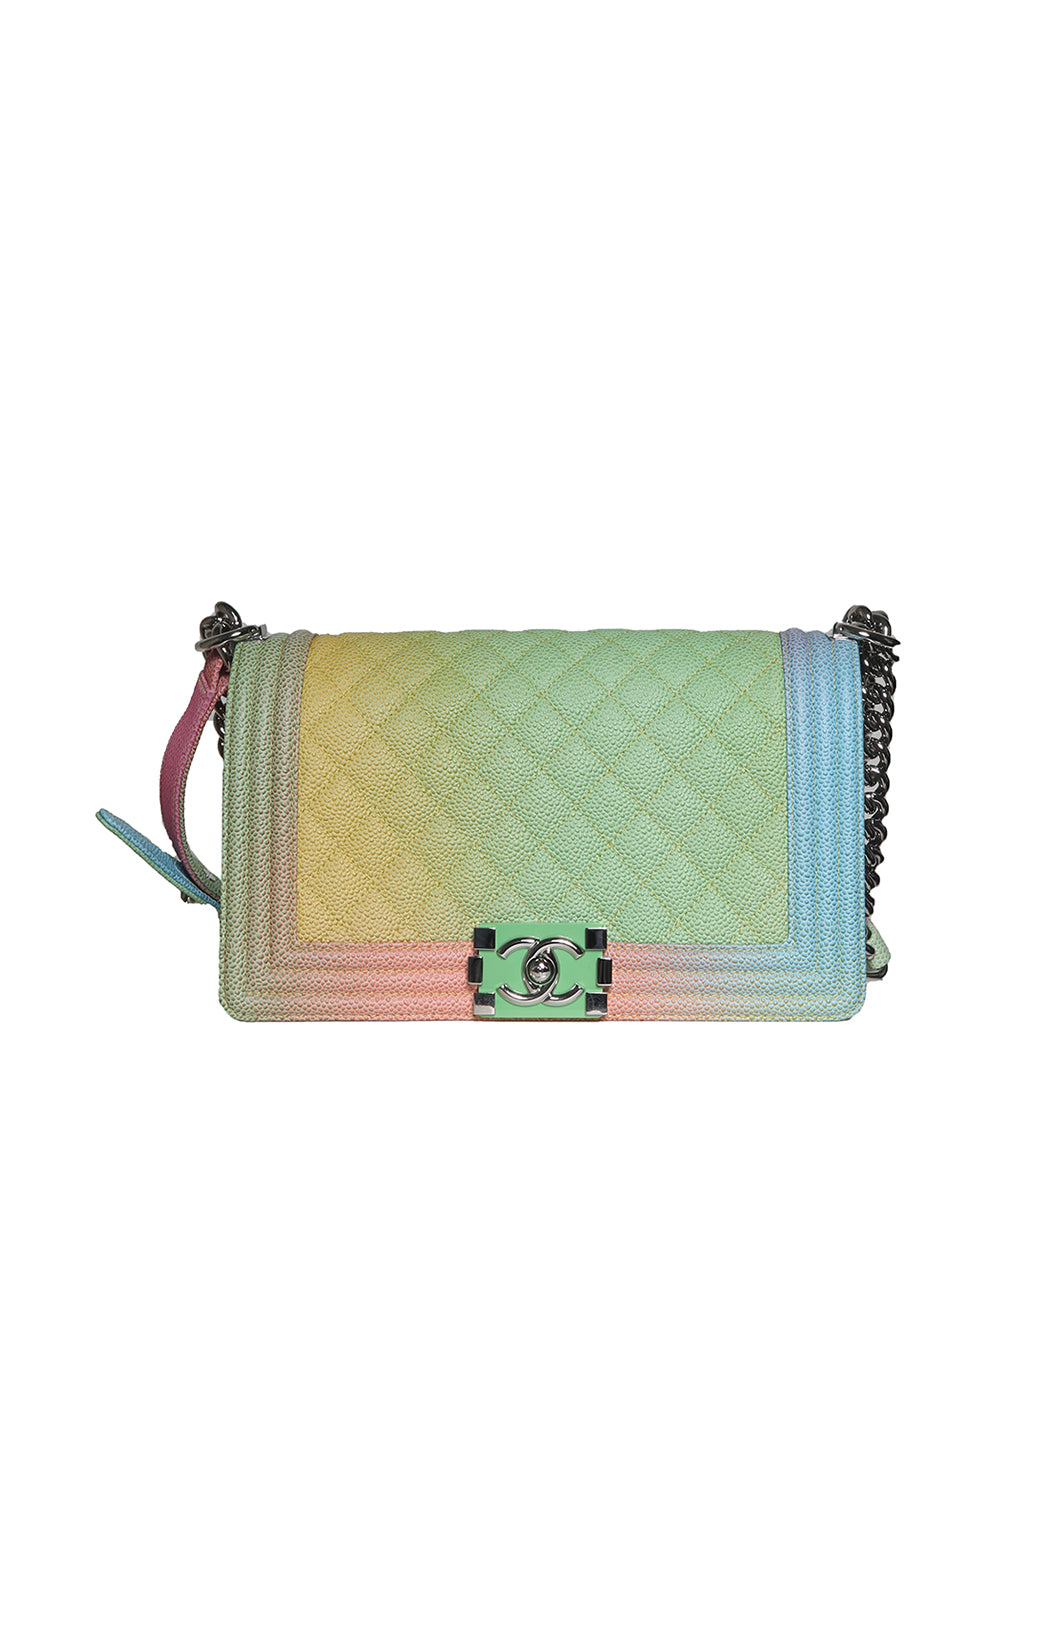 Front view of CHANEL Rainbow Leather Purse Size: 10 x 6 x 3.5 in.